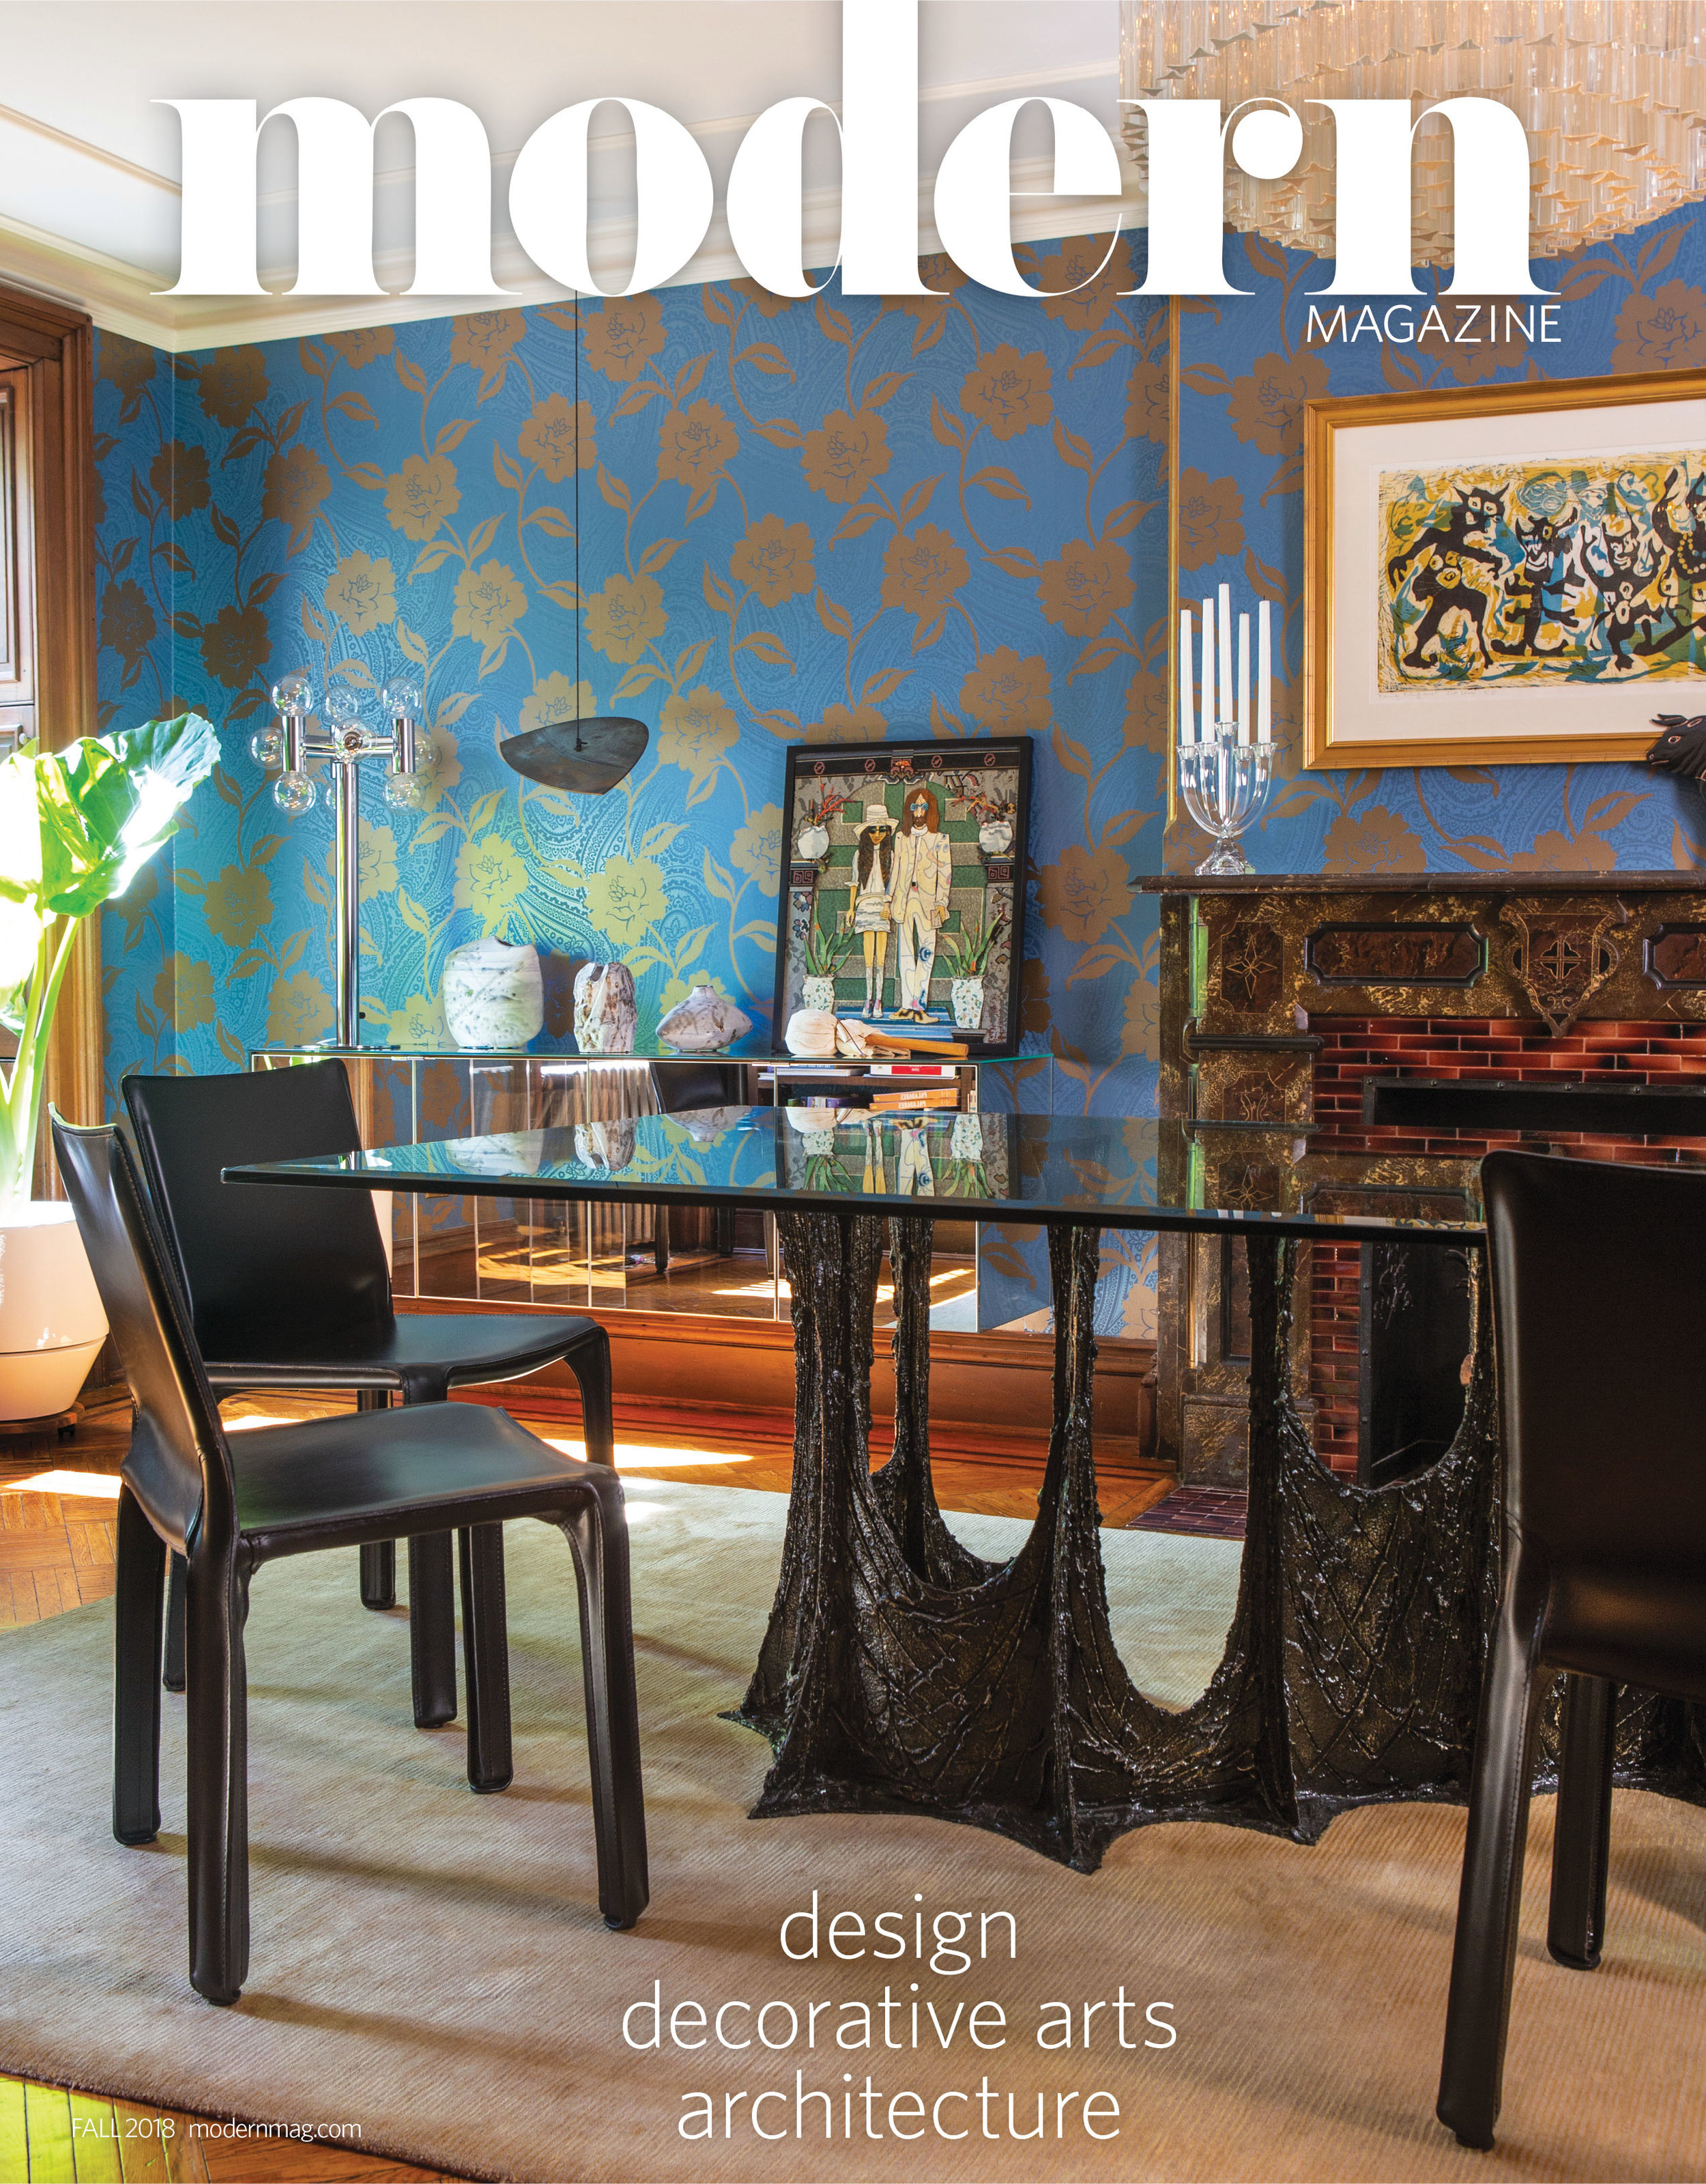 Barry Rice's townhouse featured on the cover of Modern Magazine's fall 2018 issue.